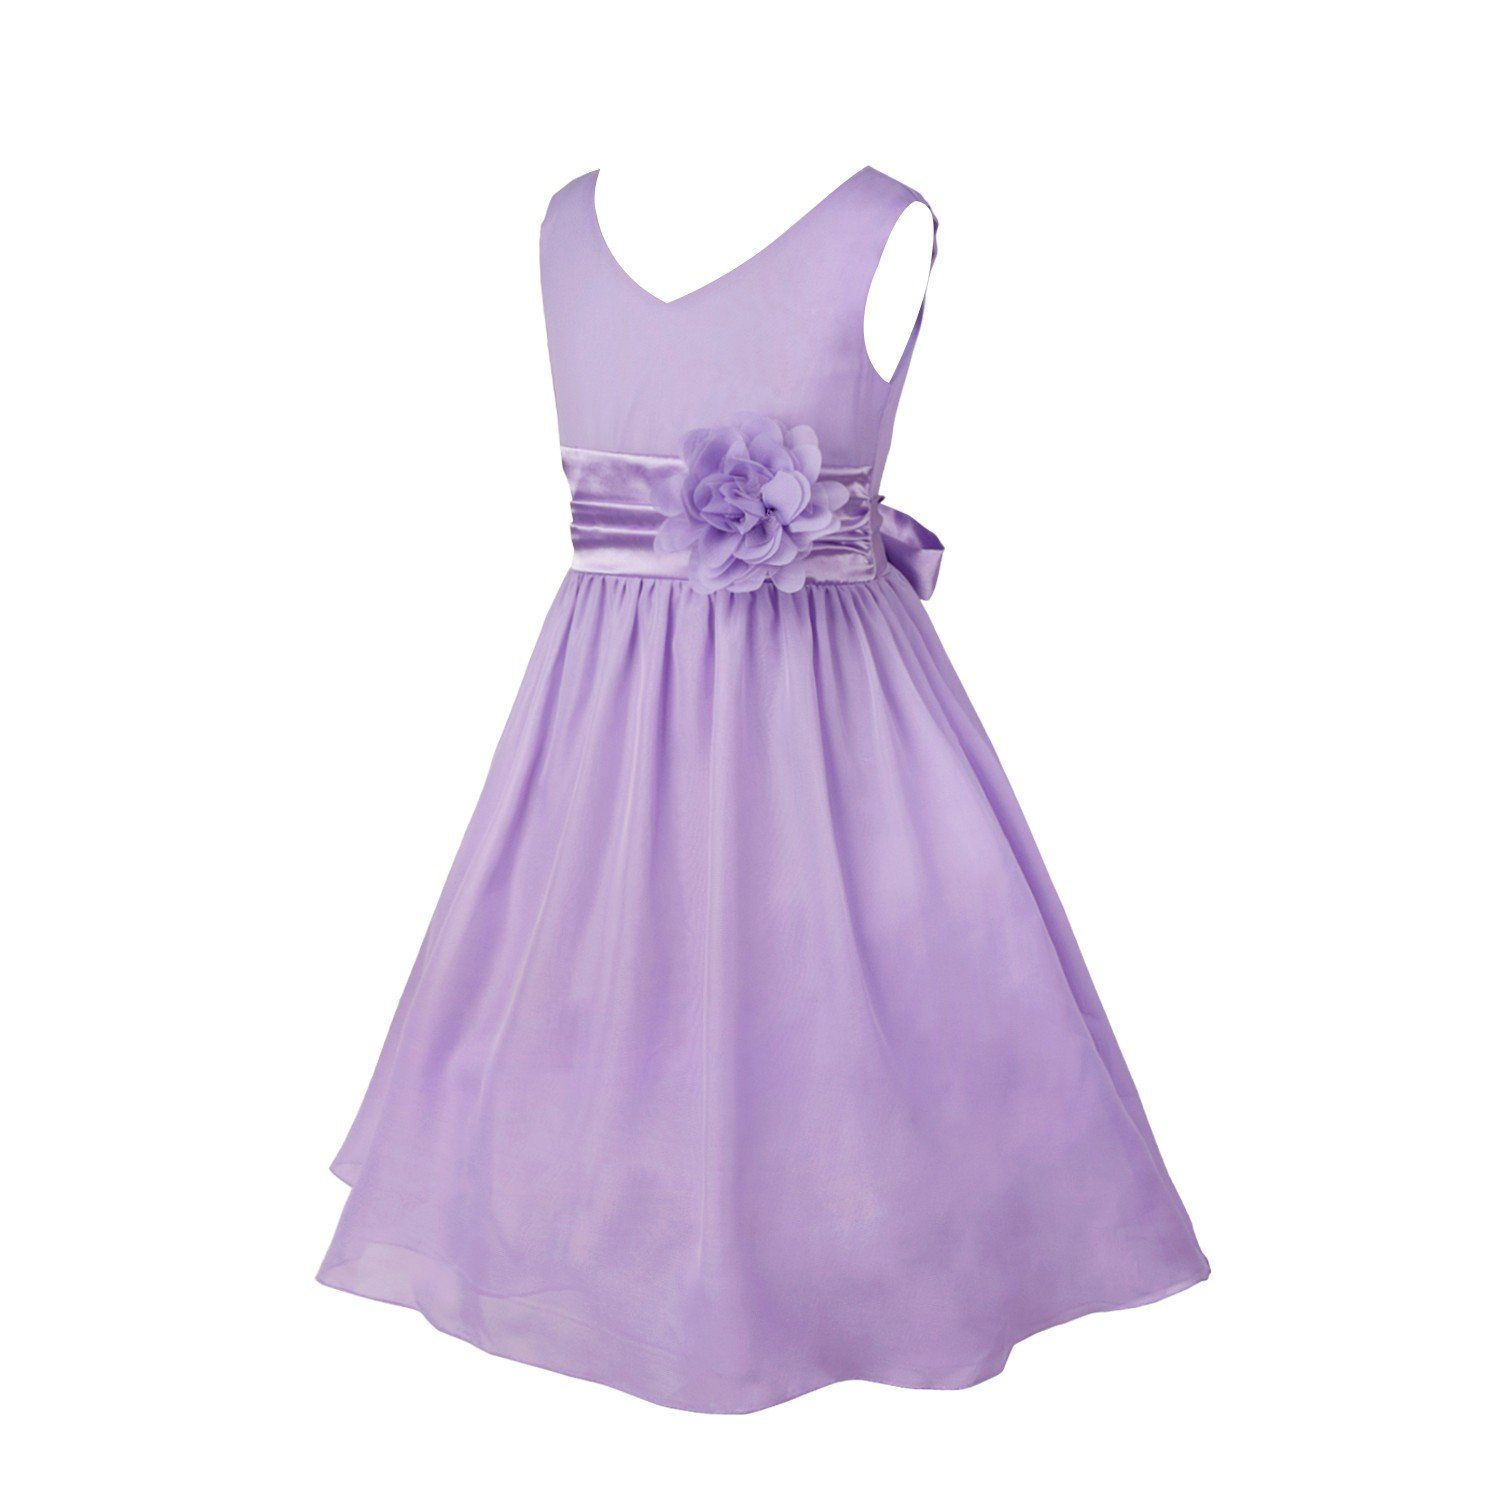 Lilac dress for wedding  TiaoBug Girls Party Dress Wedding Bridesmaid Pageant Chiffon Flower